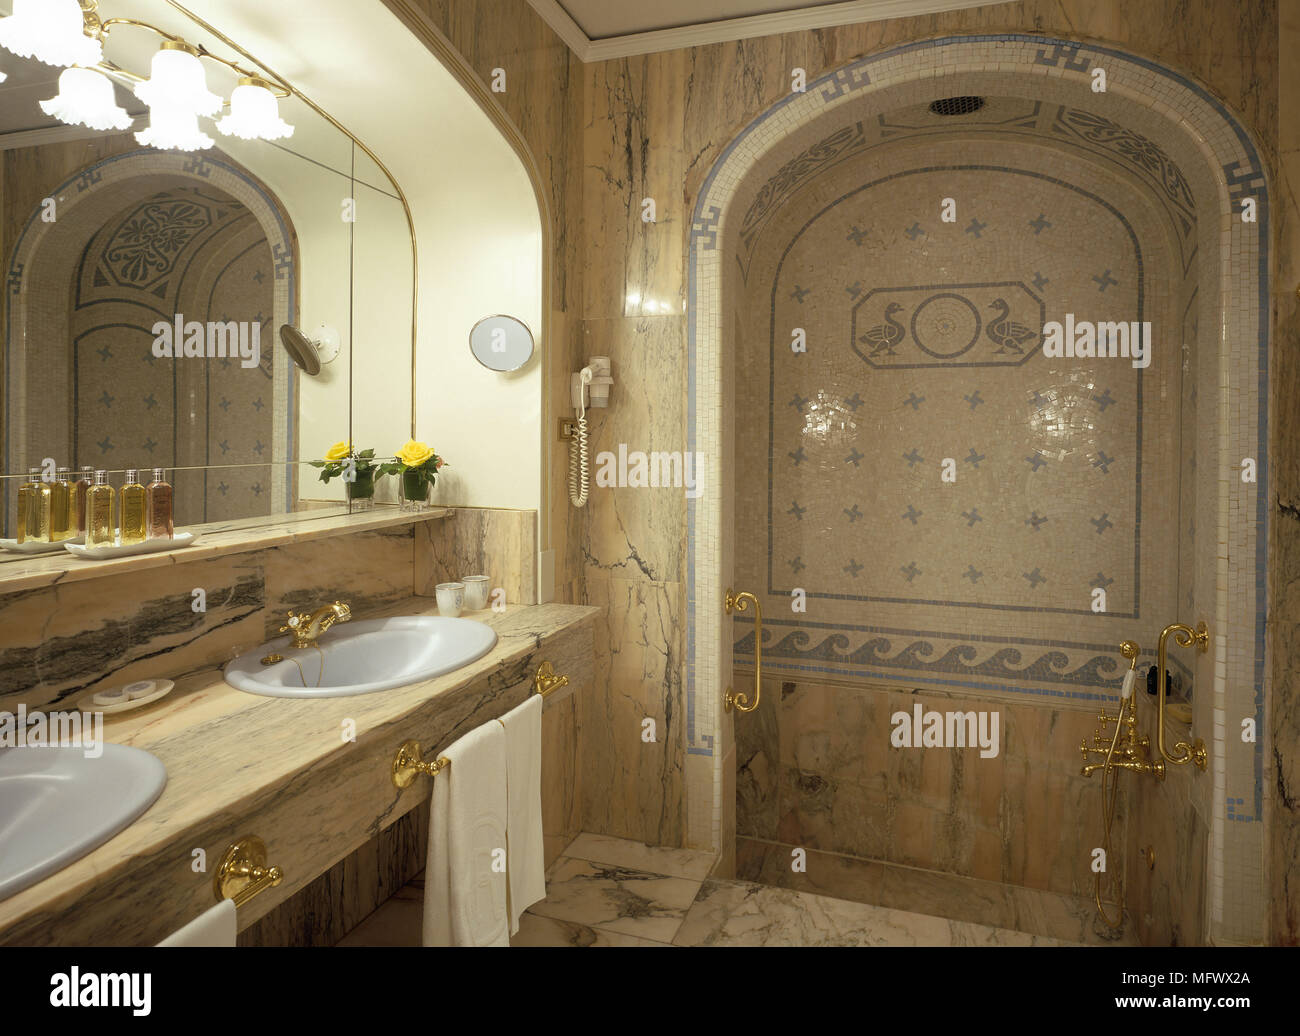 View of an esthetic bathroom - Stock Image